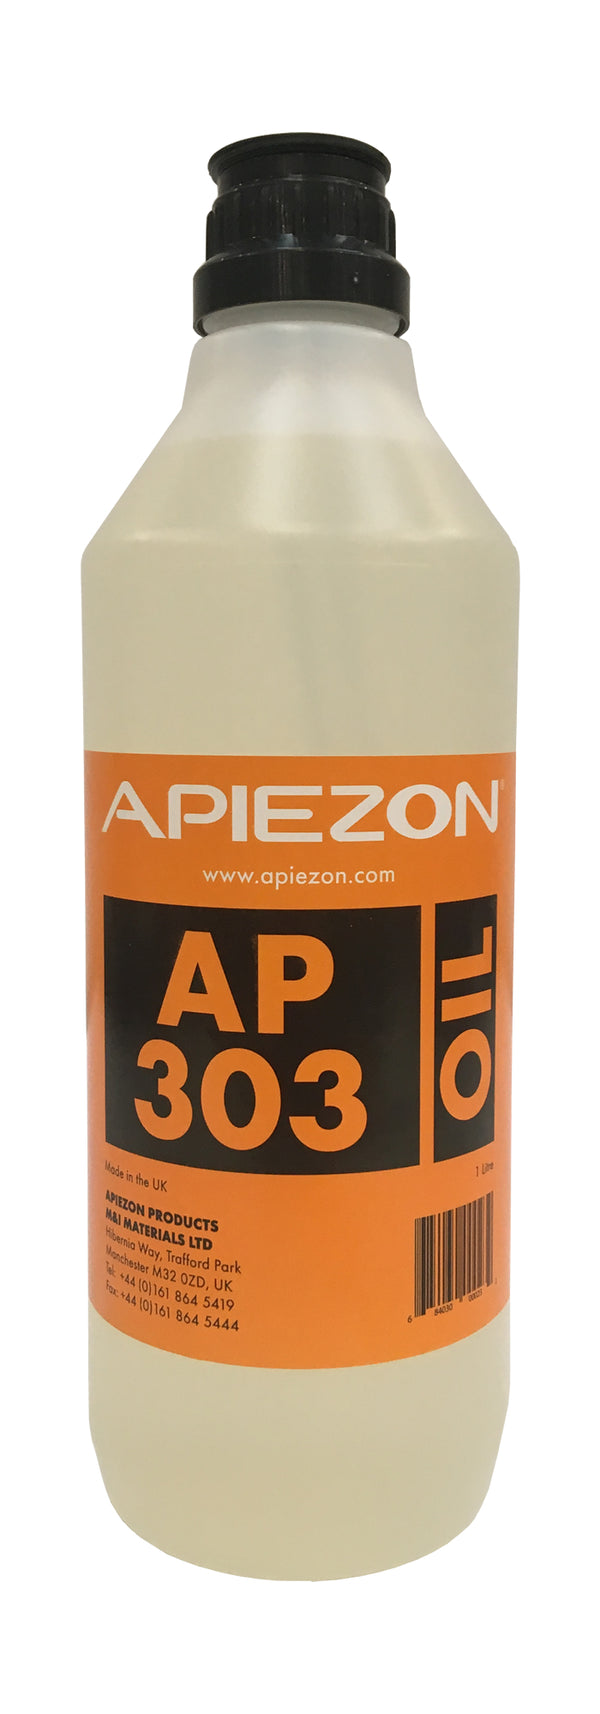 Apiezon AP303 - Nano Vacuum Australia and New Zealand